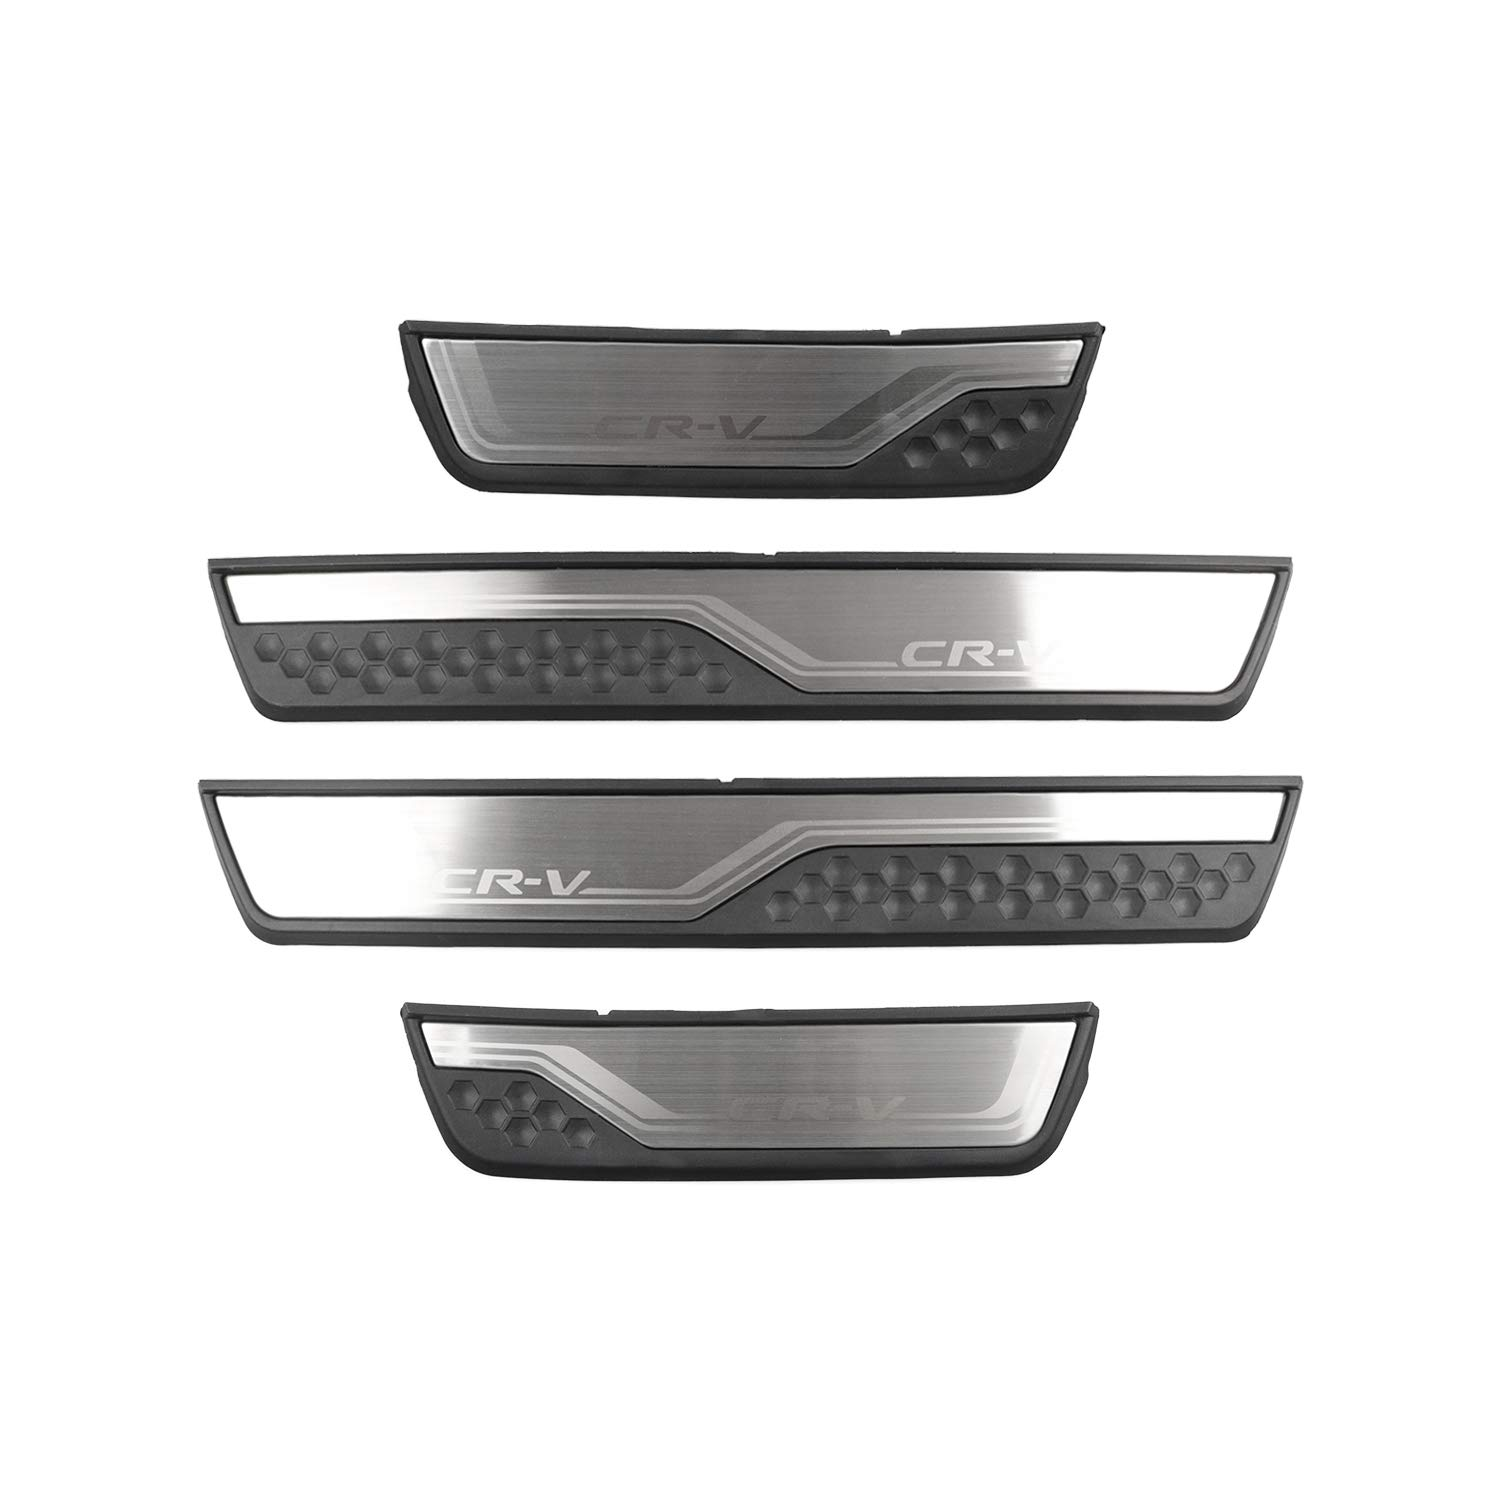 Car Door Sill Scuff Trim Plate Protectors for Honda CRV Decal Sticker Sill Protector Kit Decoration Cover Pedal Guard with Logo 4PCS R RUIYA